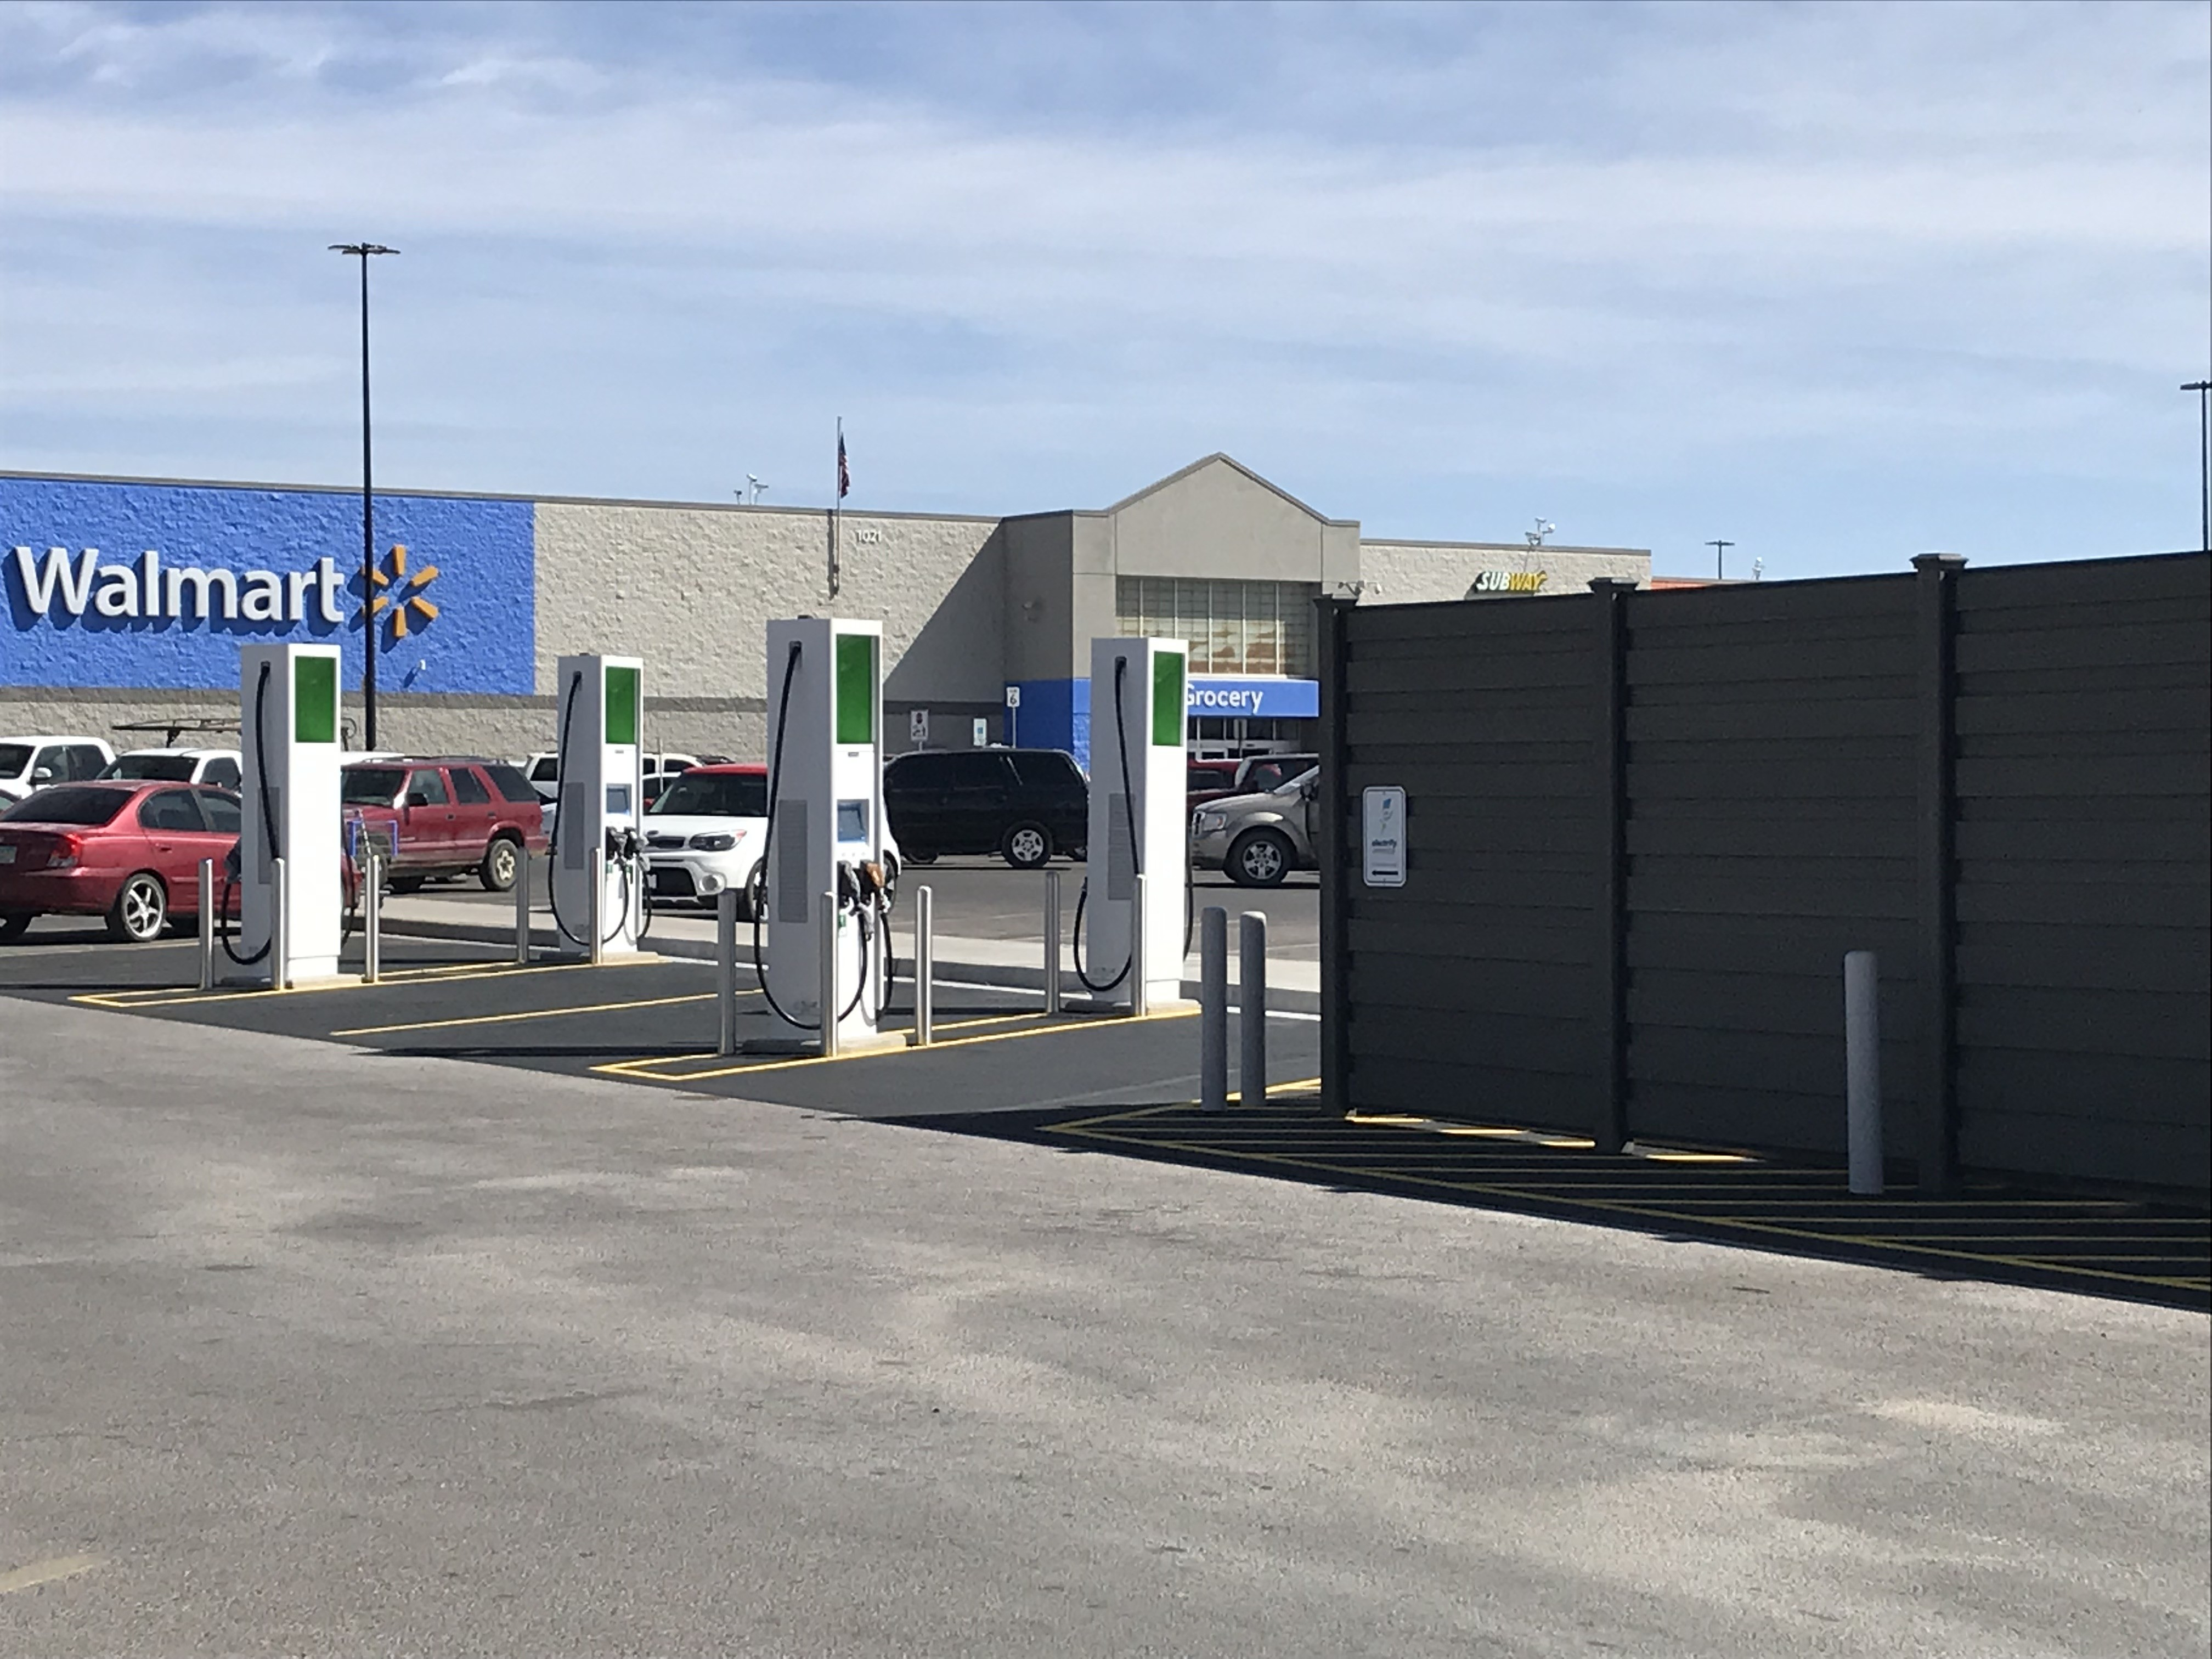 EV Charging Station at a Walmart Store